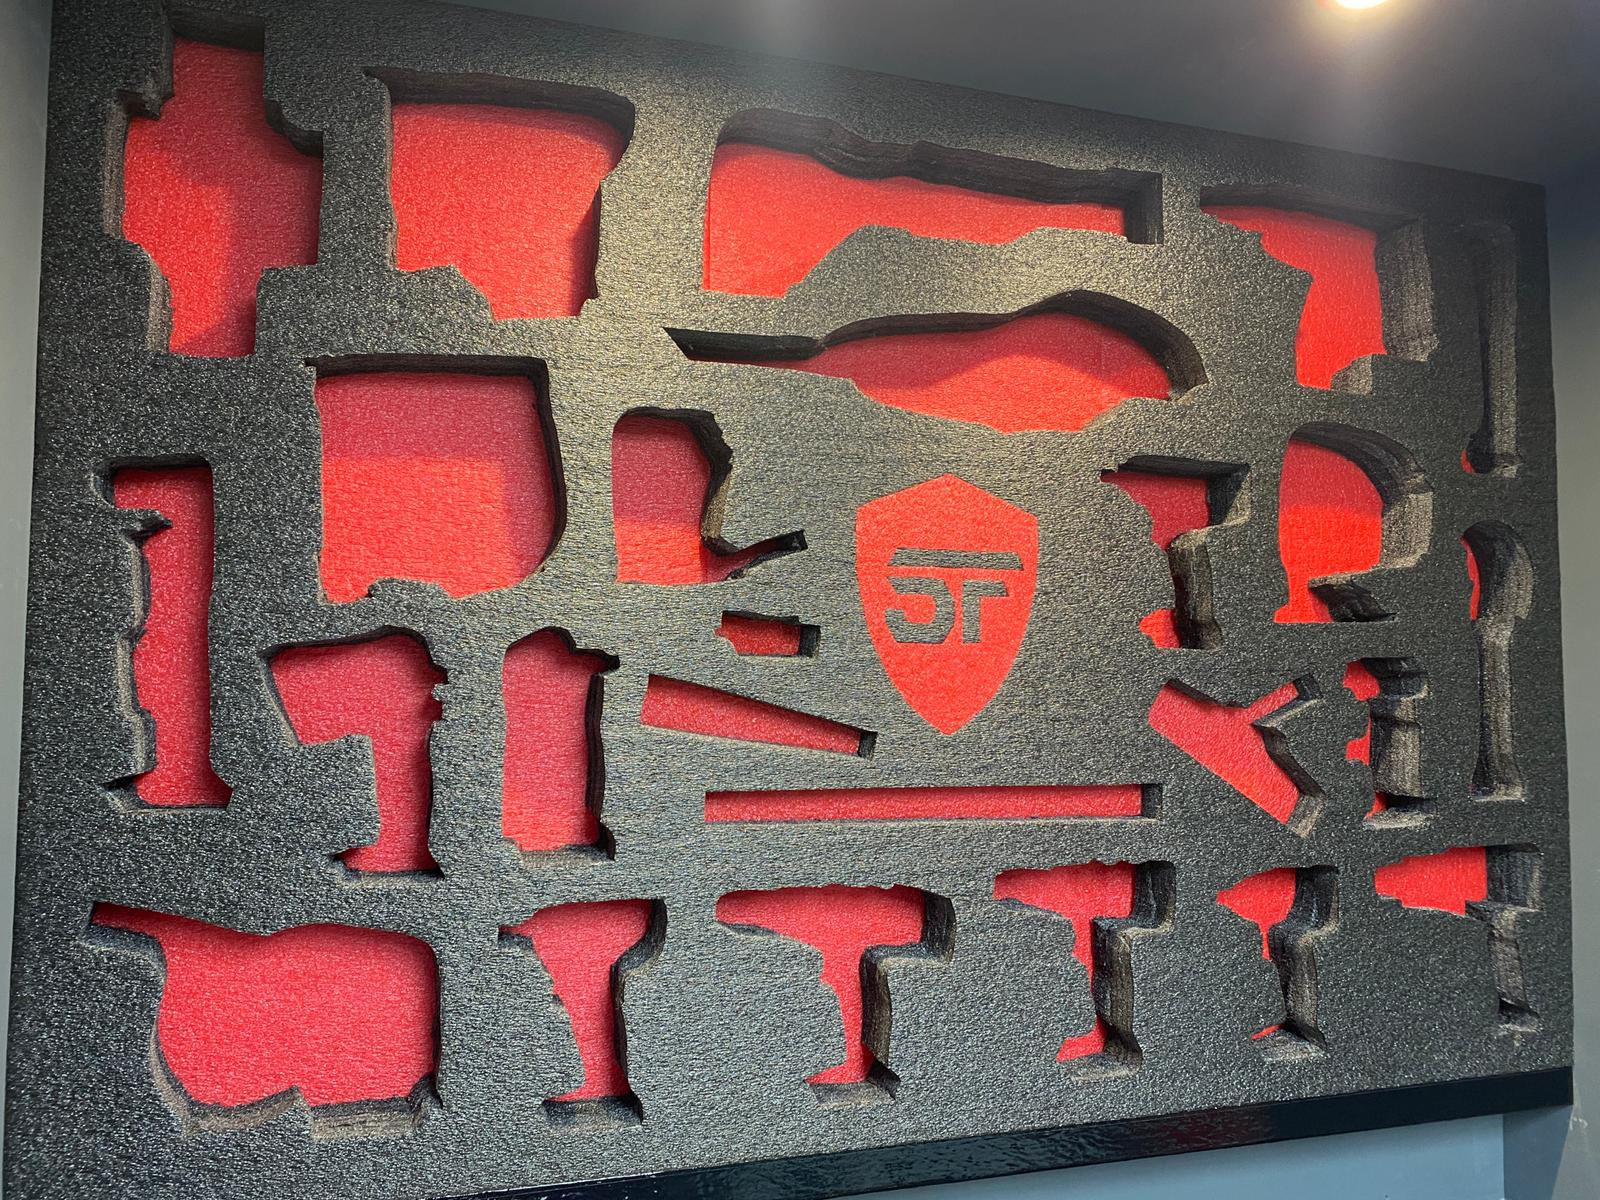 the empty tool wall showing the layout with contrasting red foam behind the grey face of the foam